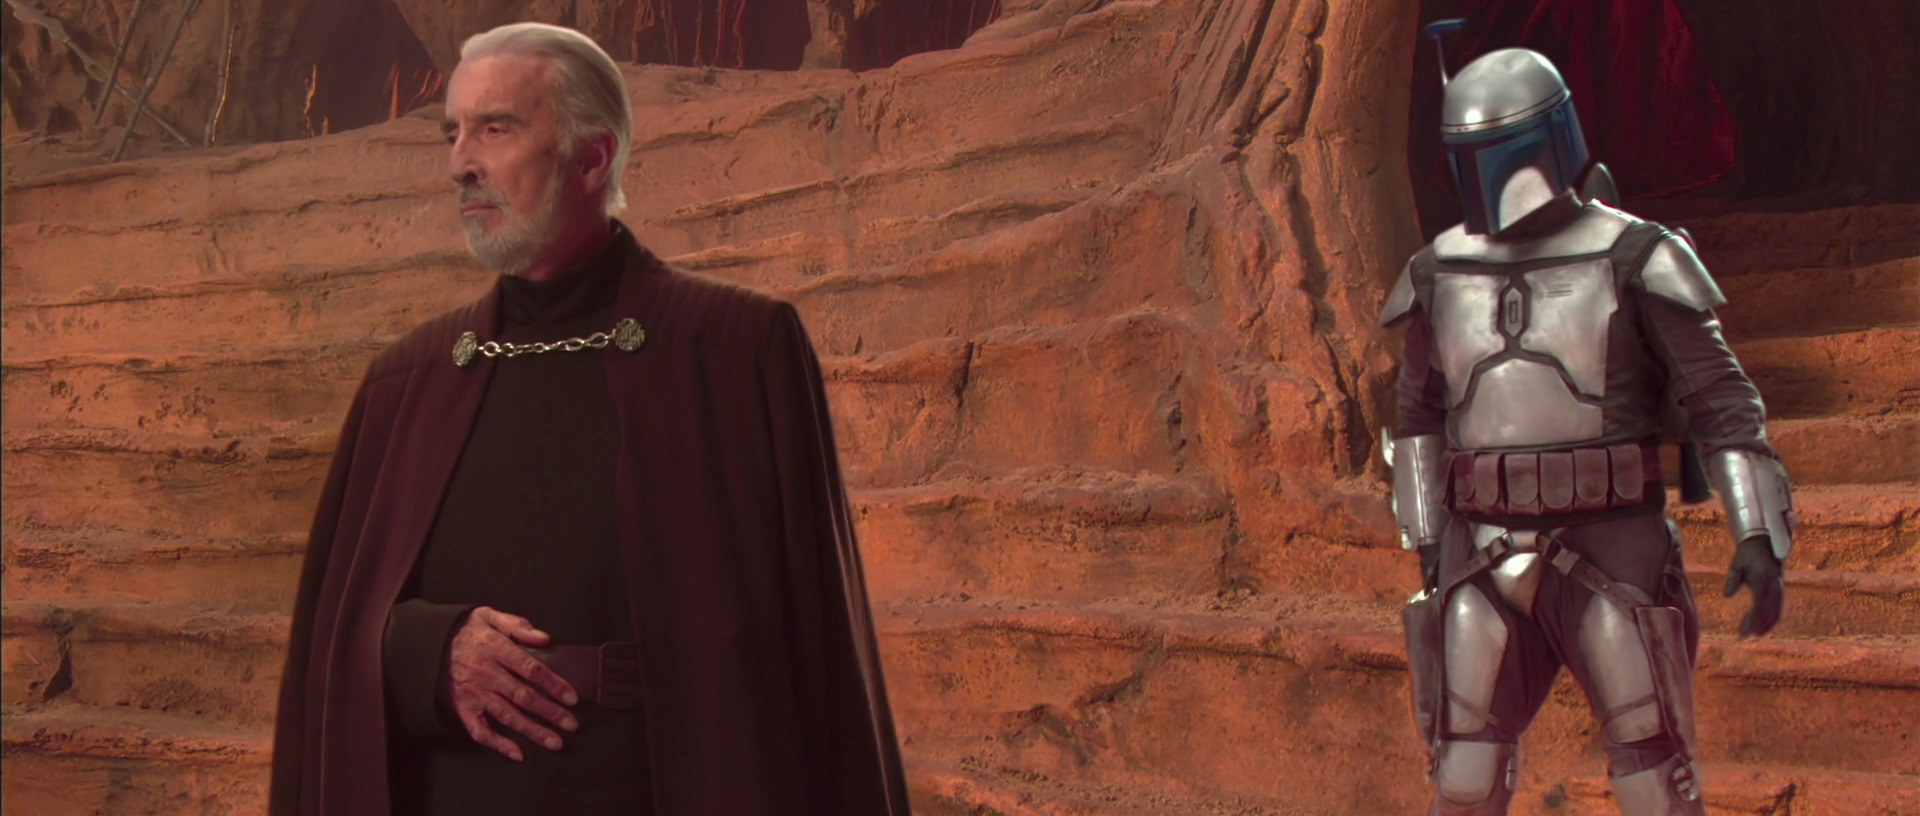 star wars attack of the clones christopher lee jango fett geonosis george lucas review retrospective